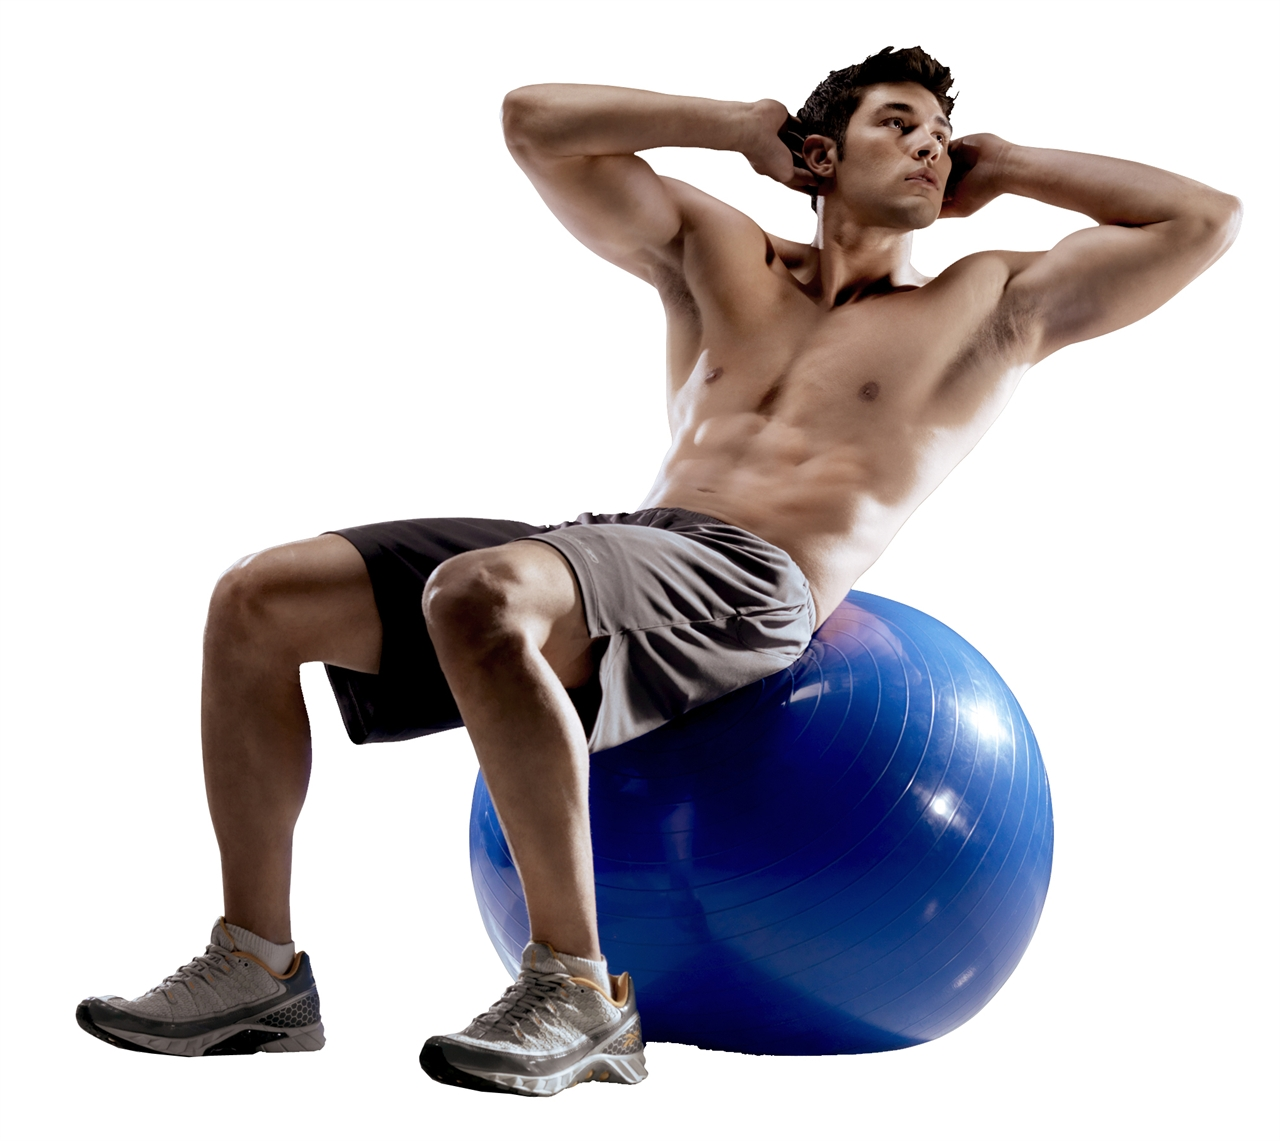 What is the best gym exercise for weight loss